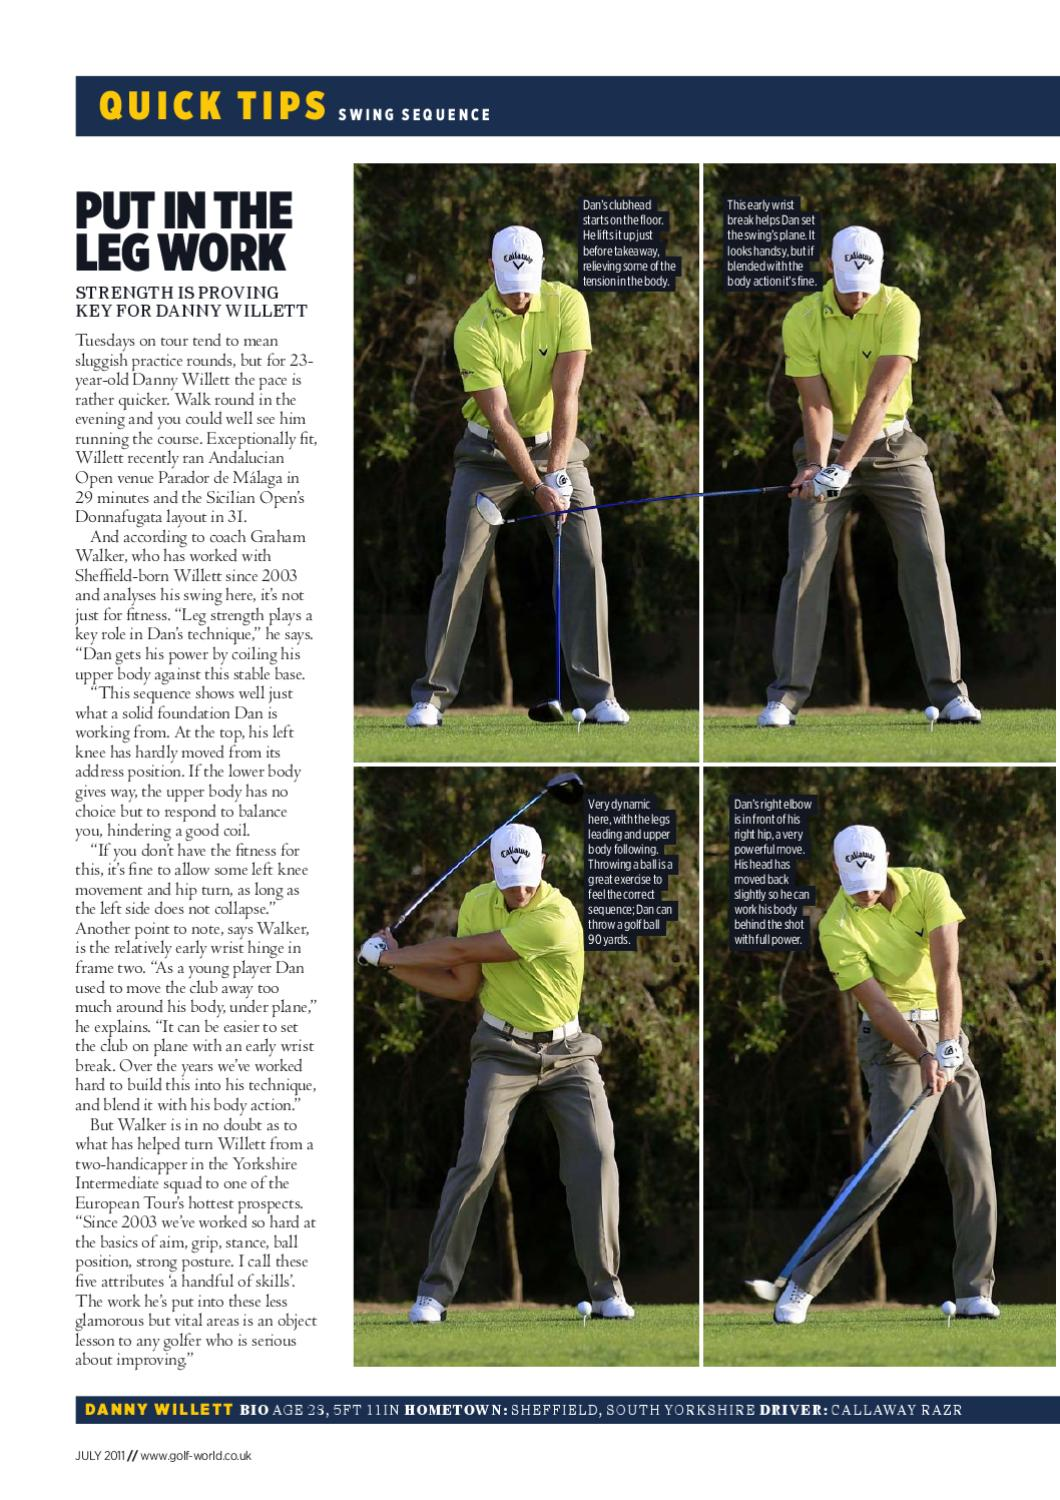 Start Golf Swing With Legs